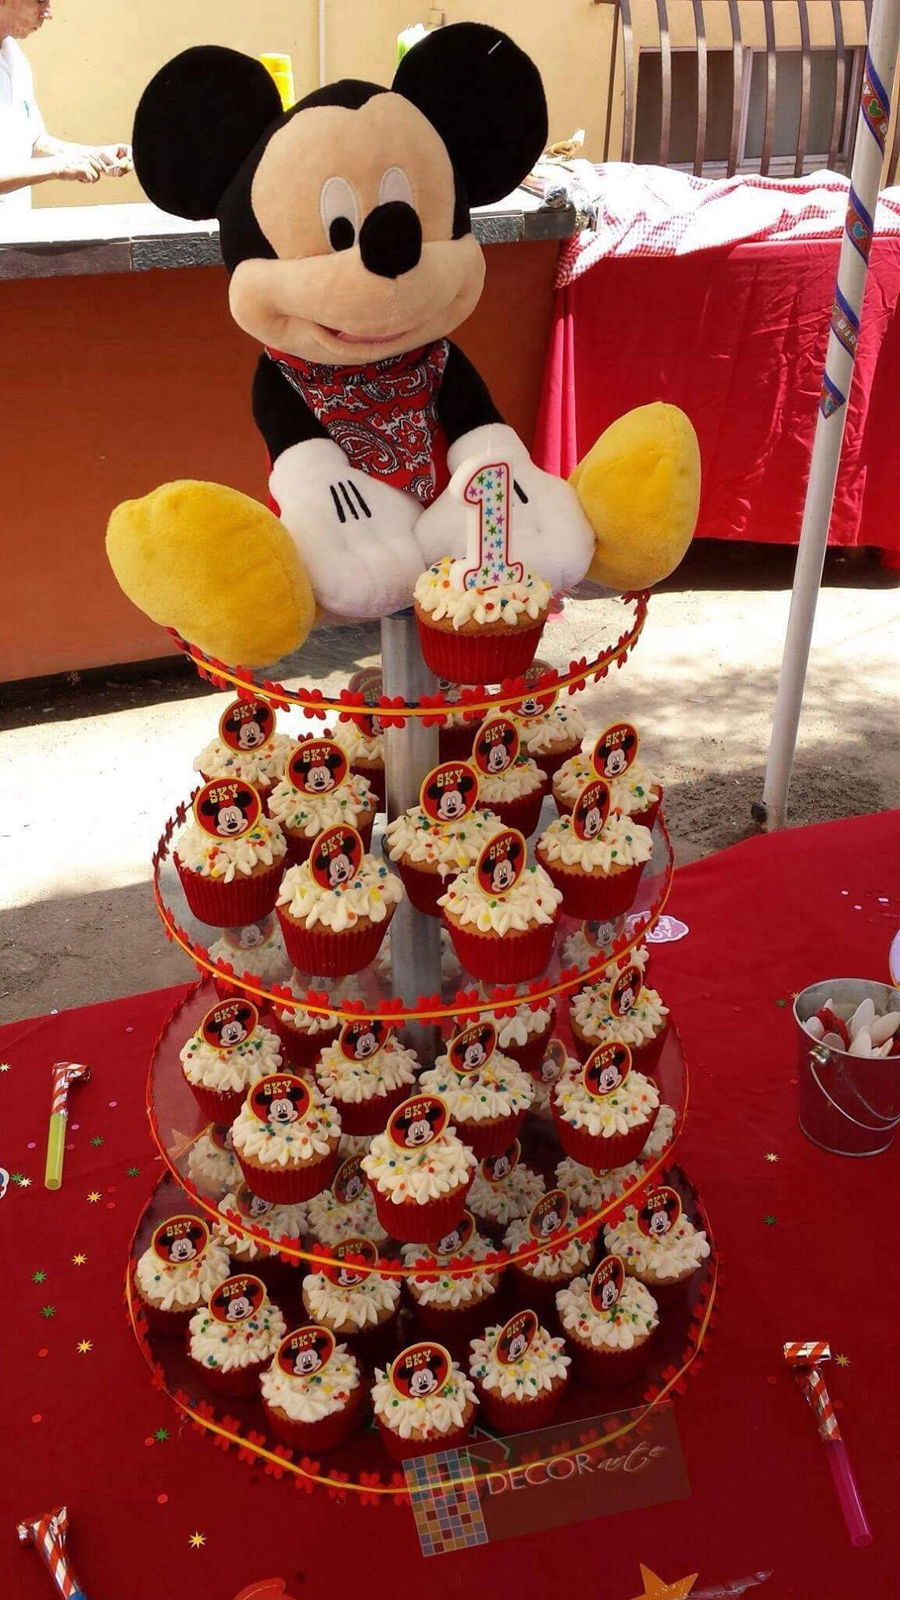 Remarkable Mickey Mouse Cupcake Tower Cakecentral Com Funny Birthday Cards Online Inifofree Goldxyz